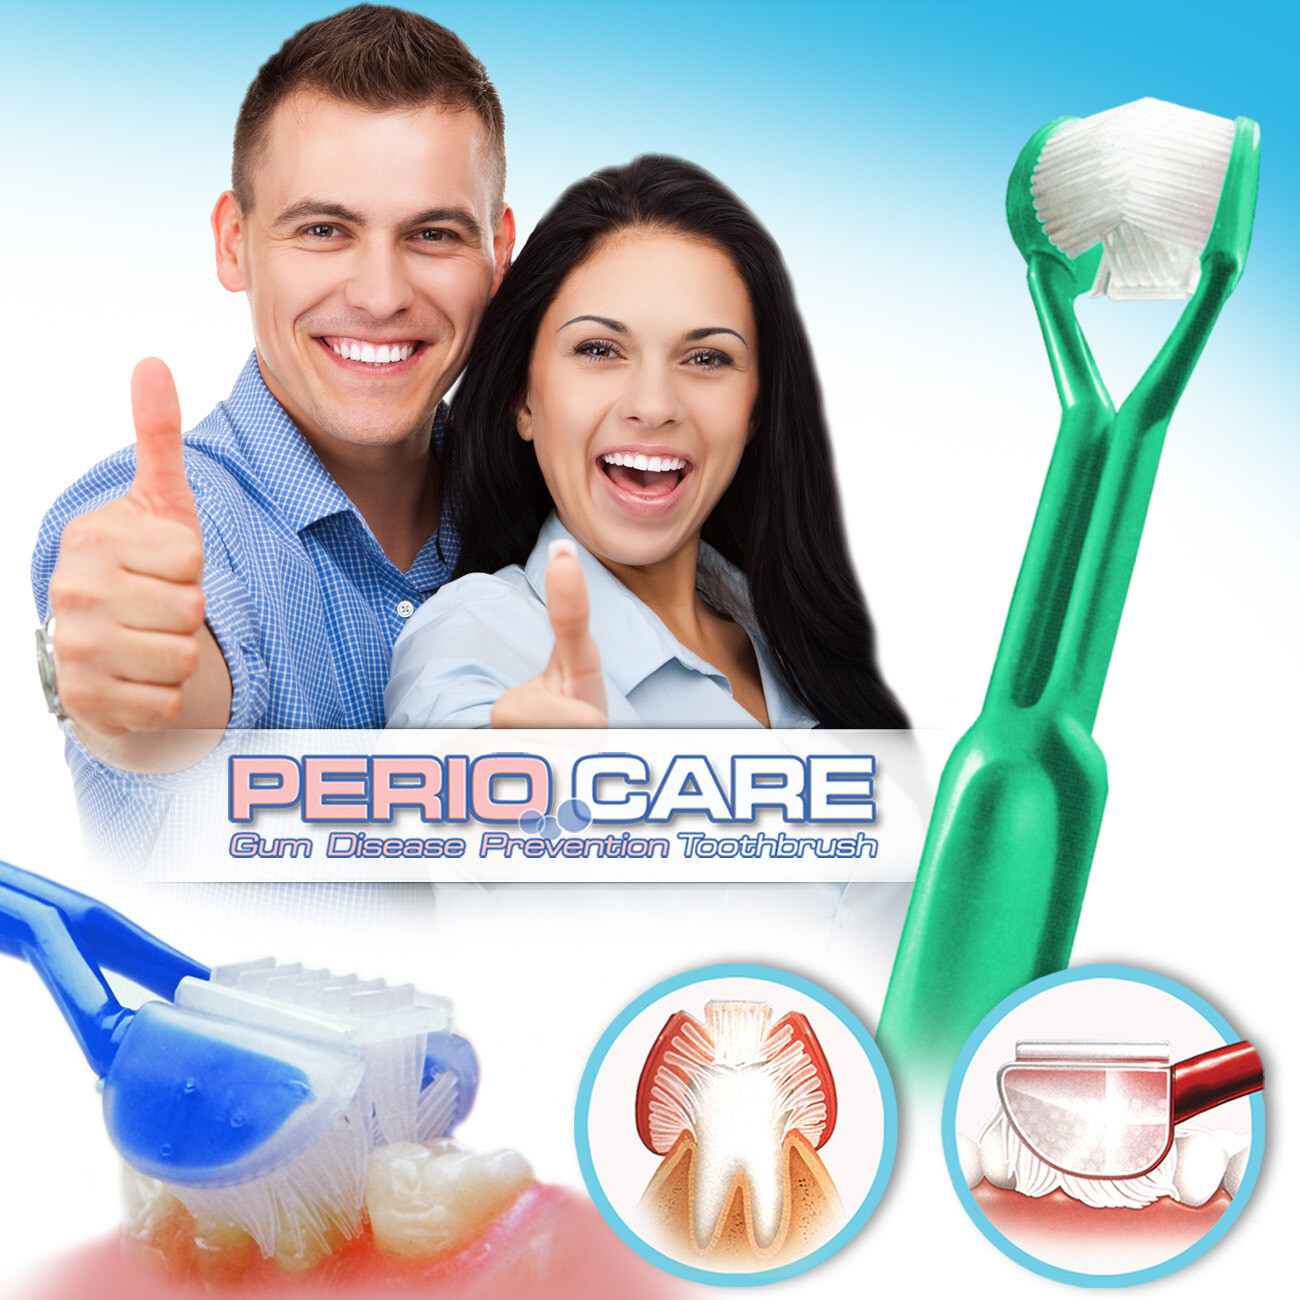 DenTrust PERIOCARE 3-Sided Toothbrush :: Advanced Wrap-Around Design :: Fast, Easy & More Effective :: Clinically Proven to Remove More Plaque & Prevent Gum Disease